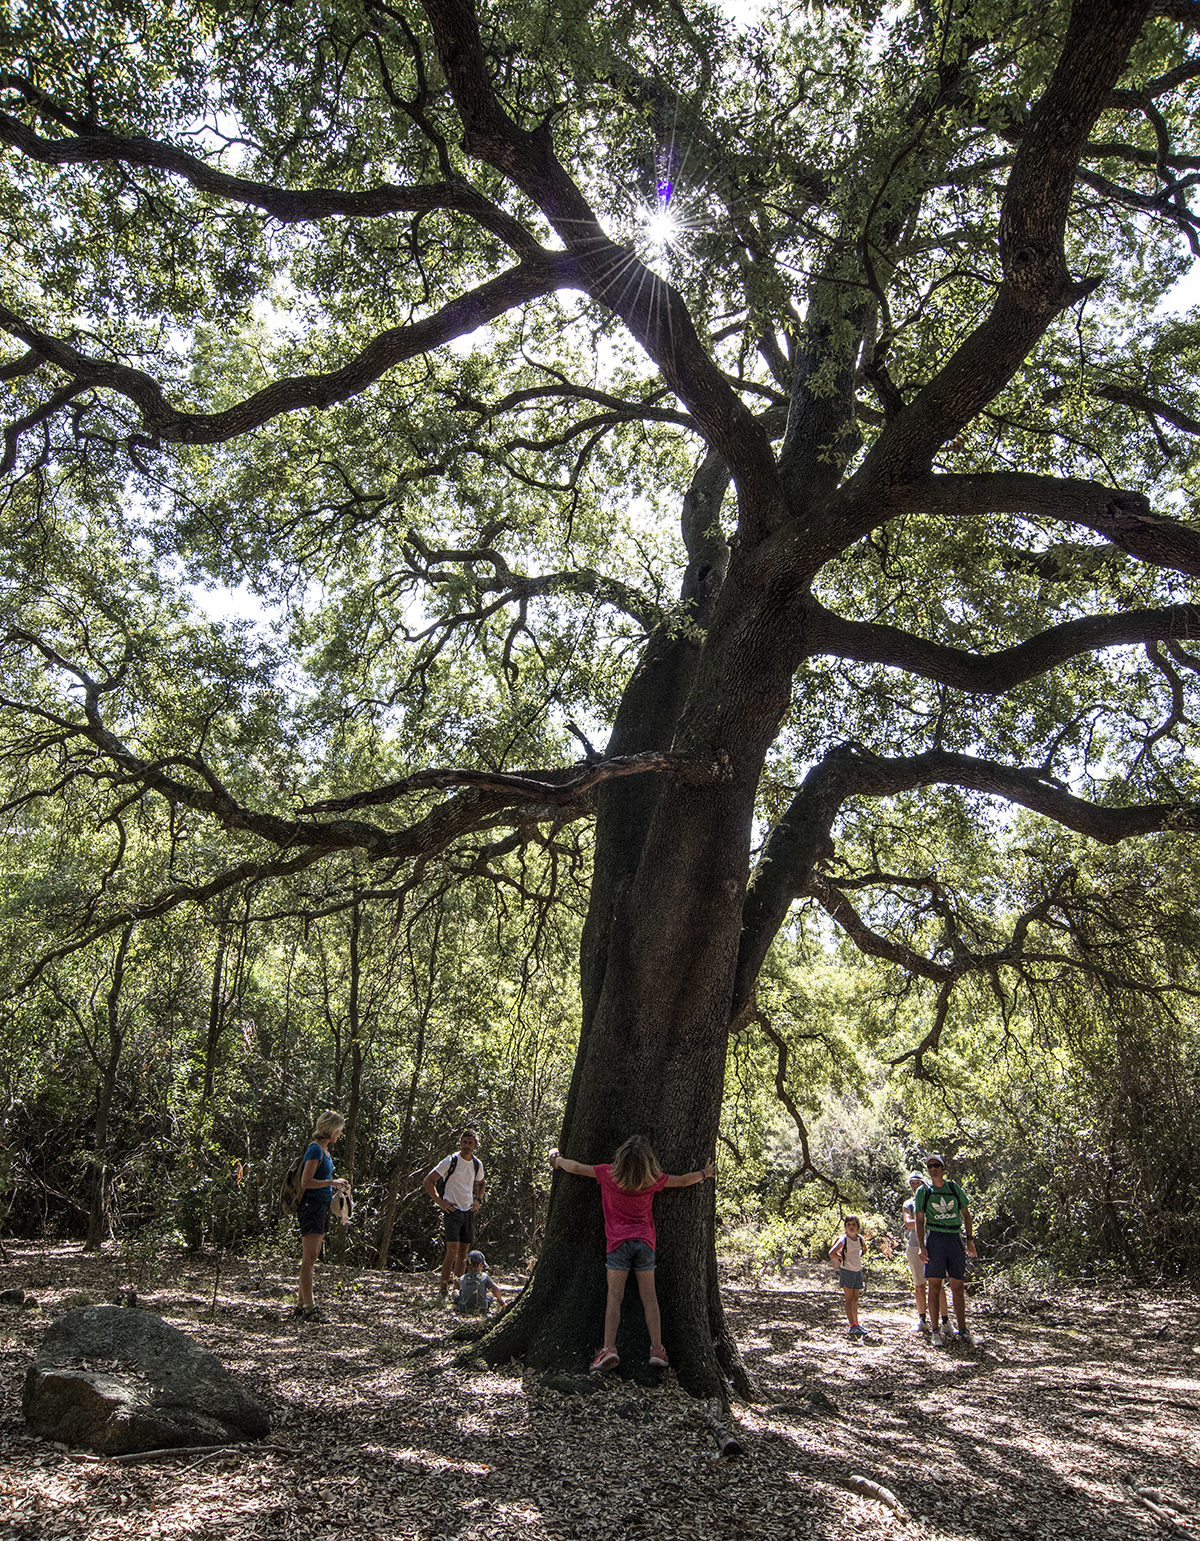 A big Holm oak